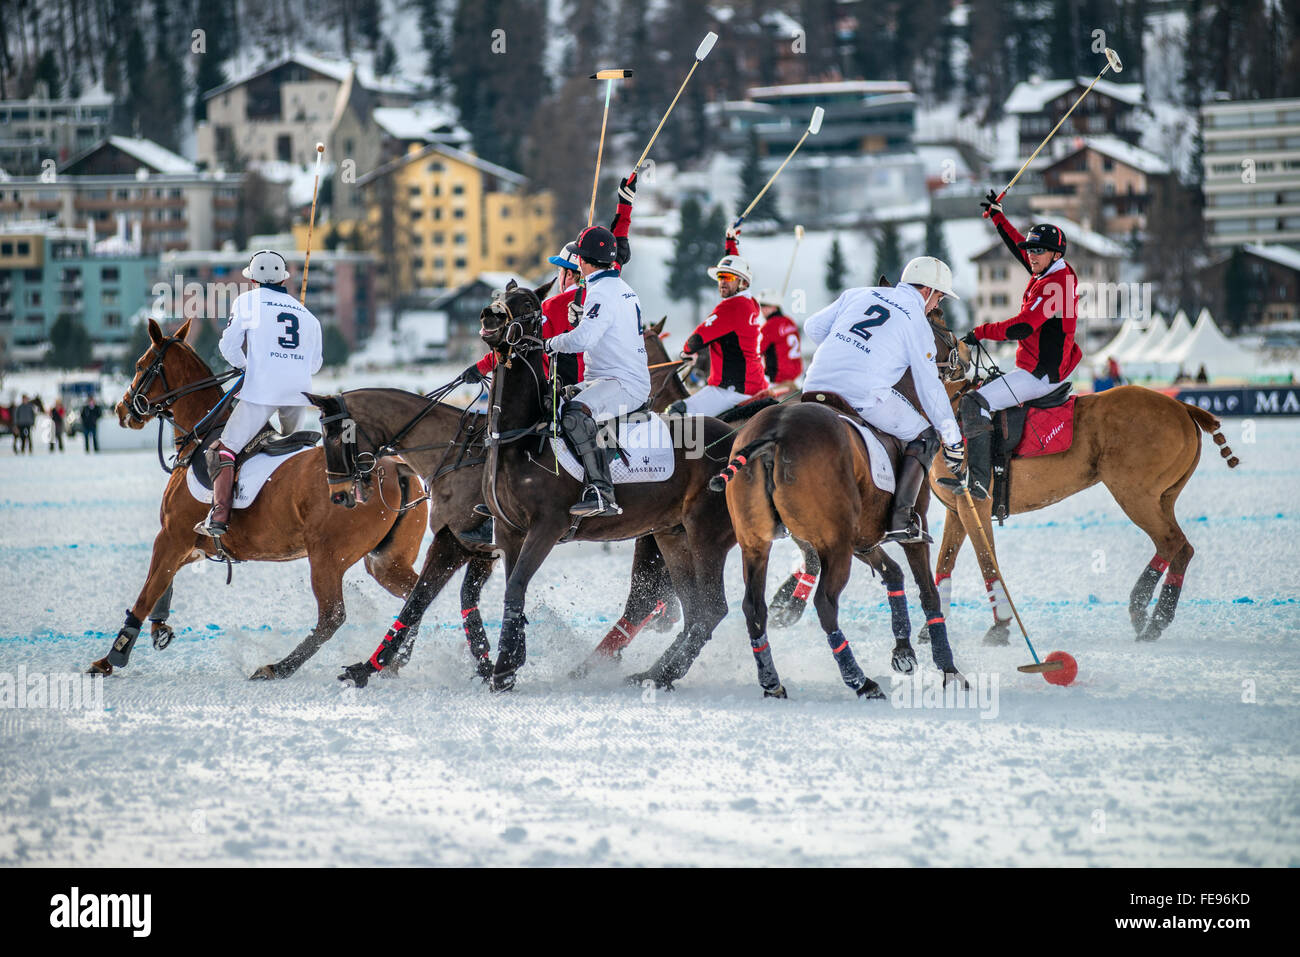 Members of the 'Cartier' team play against Team 'Maserati' during the Snow Polo World Cup 2016, - Stock Image